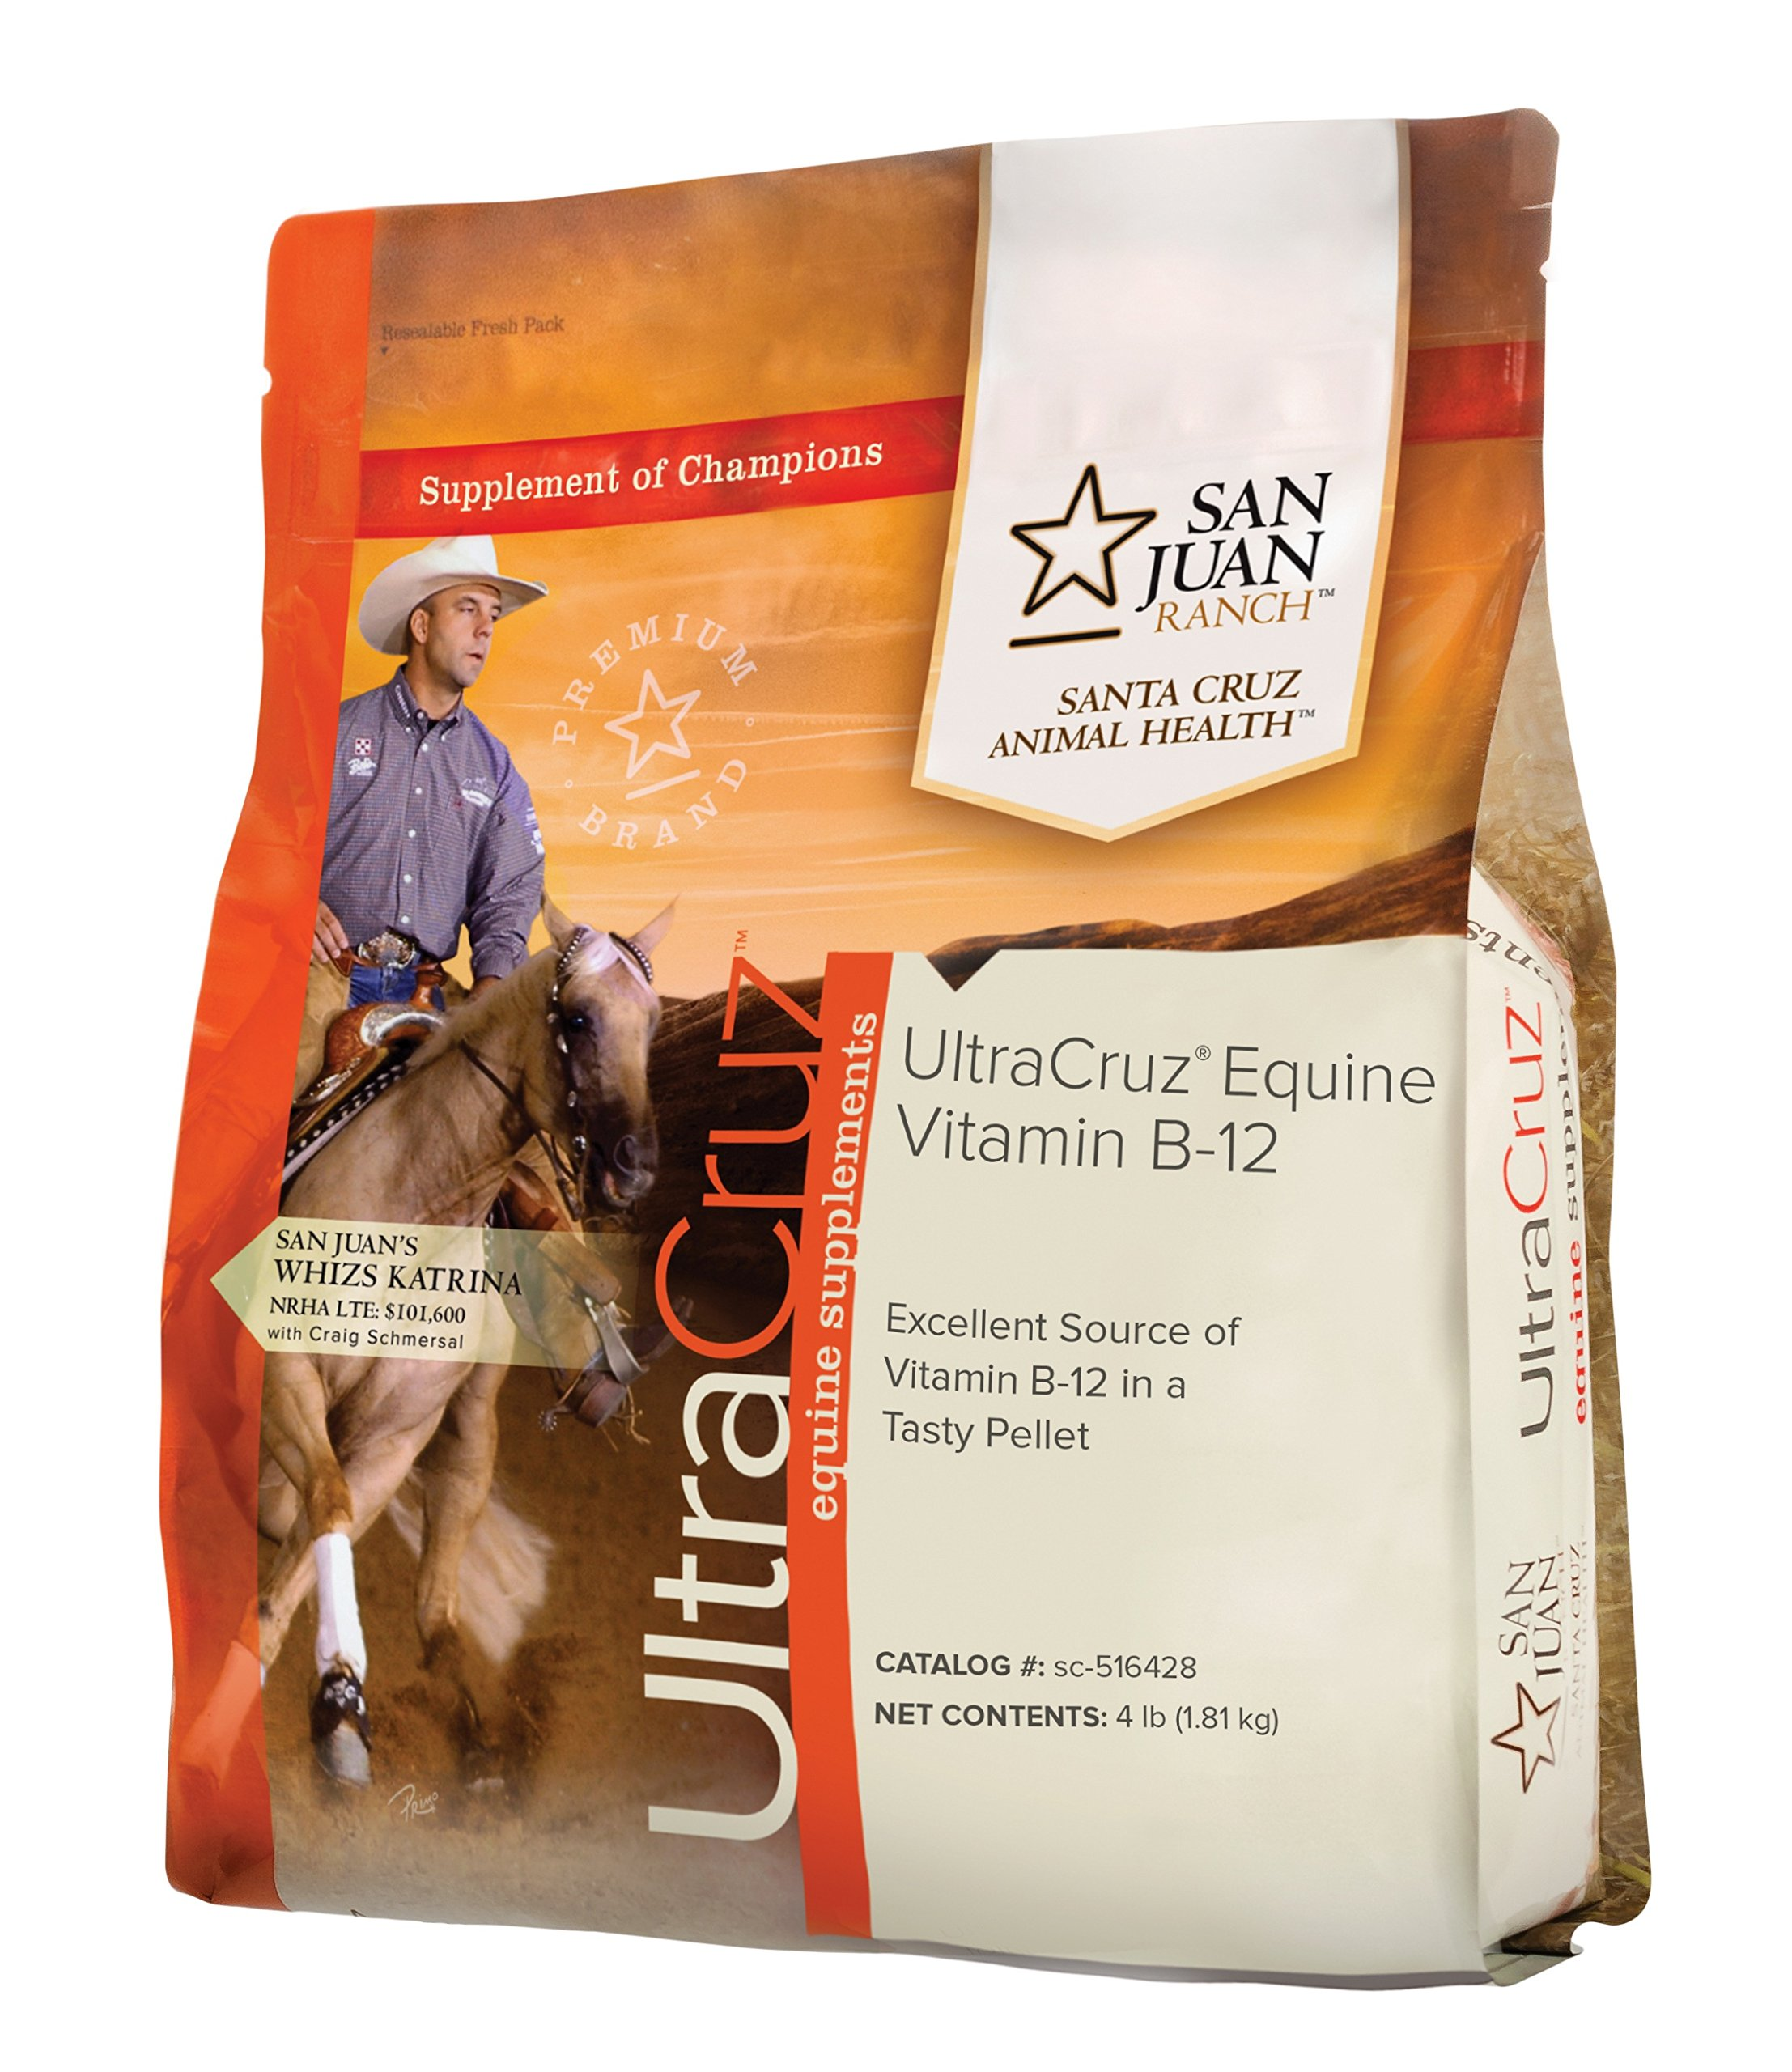 UltraCruz Equine Vitamin B-12 Supplement for Horses, 4 lb, Pellet (64 Day Supply) by UltraCruz